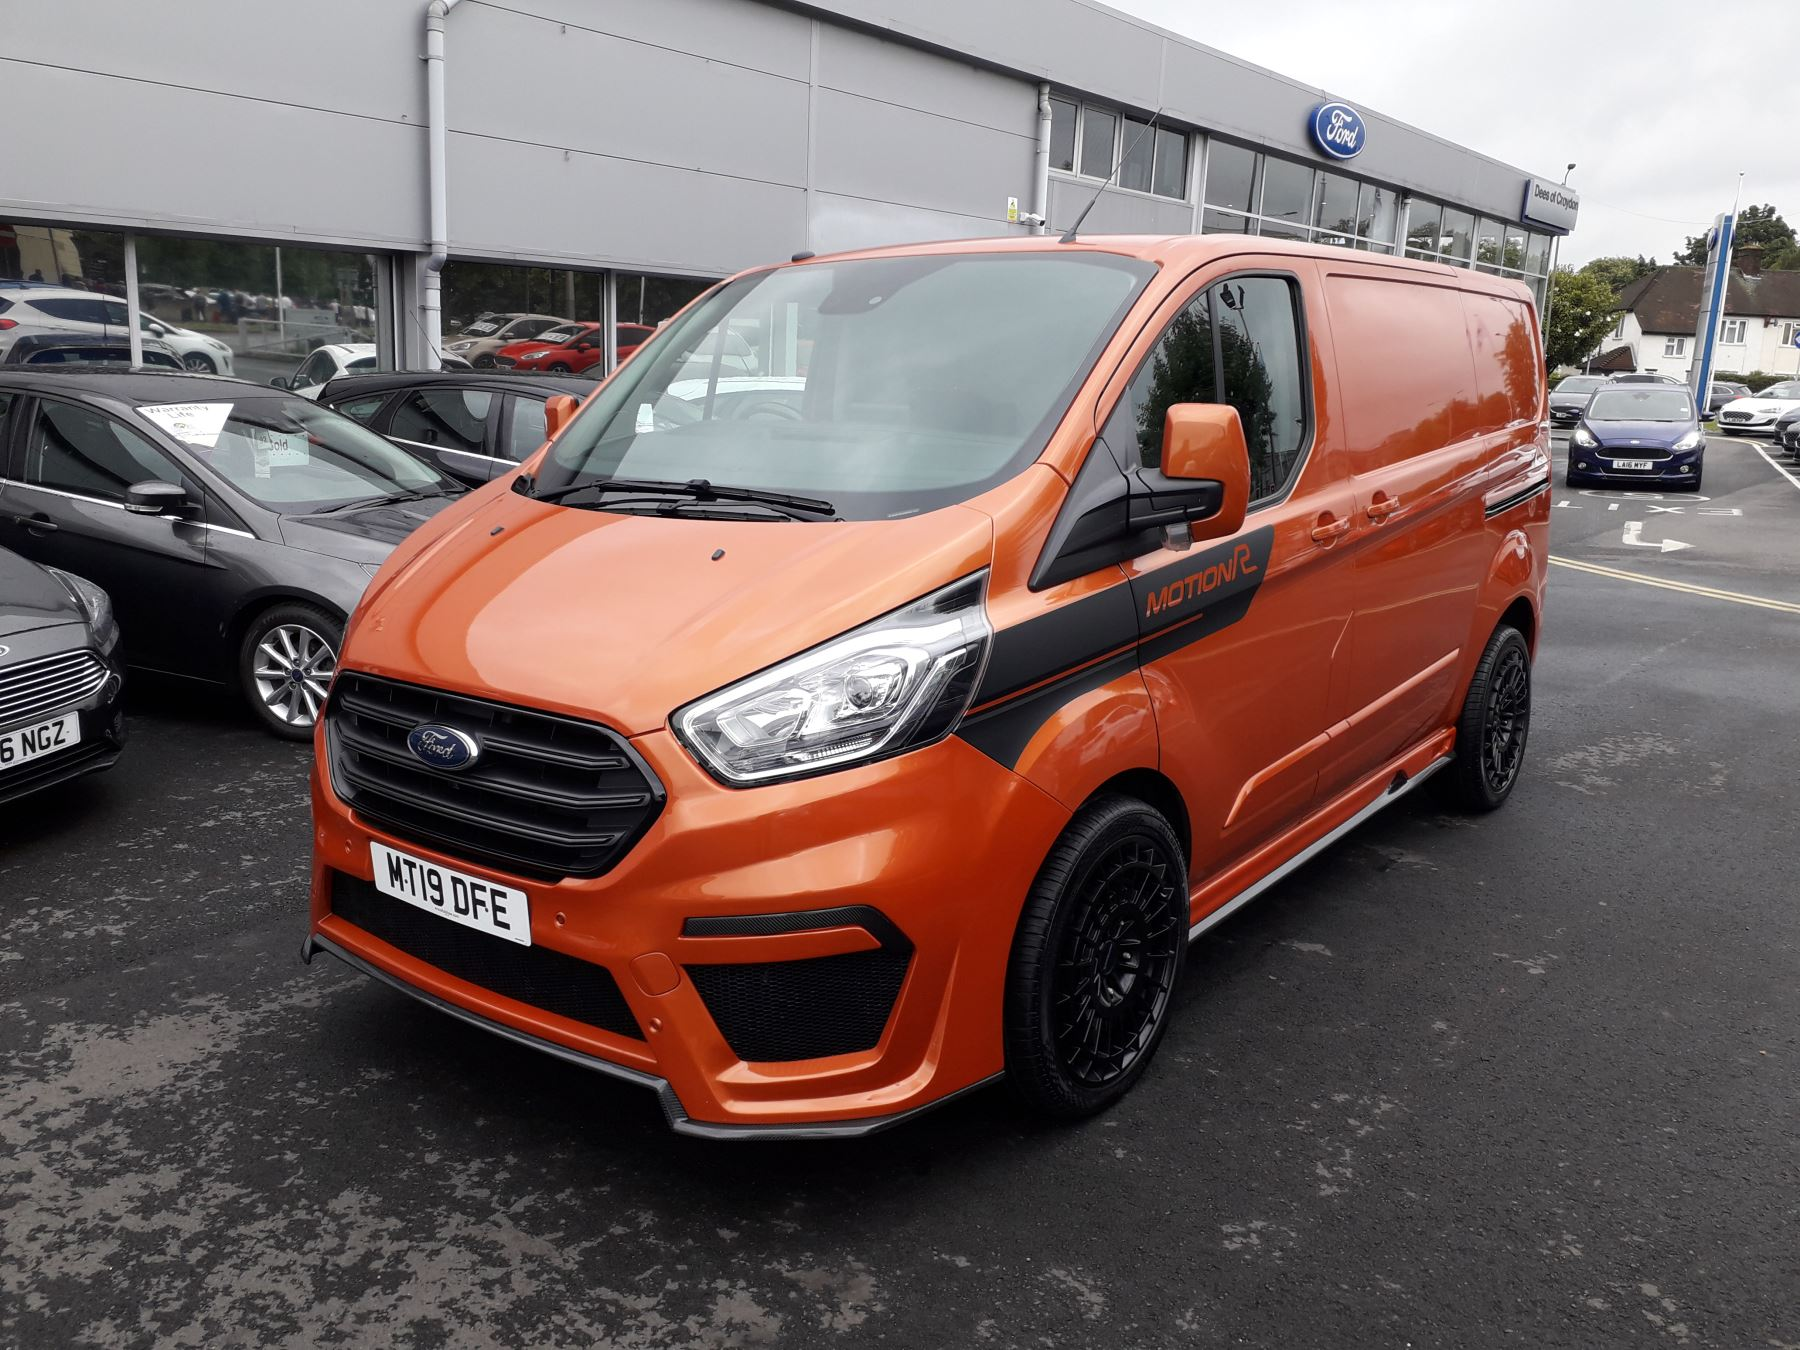 Ford Transit Custom 280 L1 Motion R 130PS Euro 6 image 3